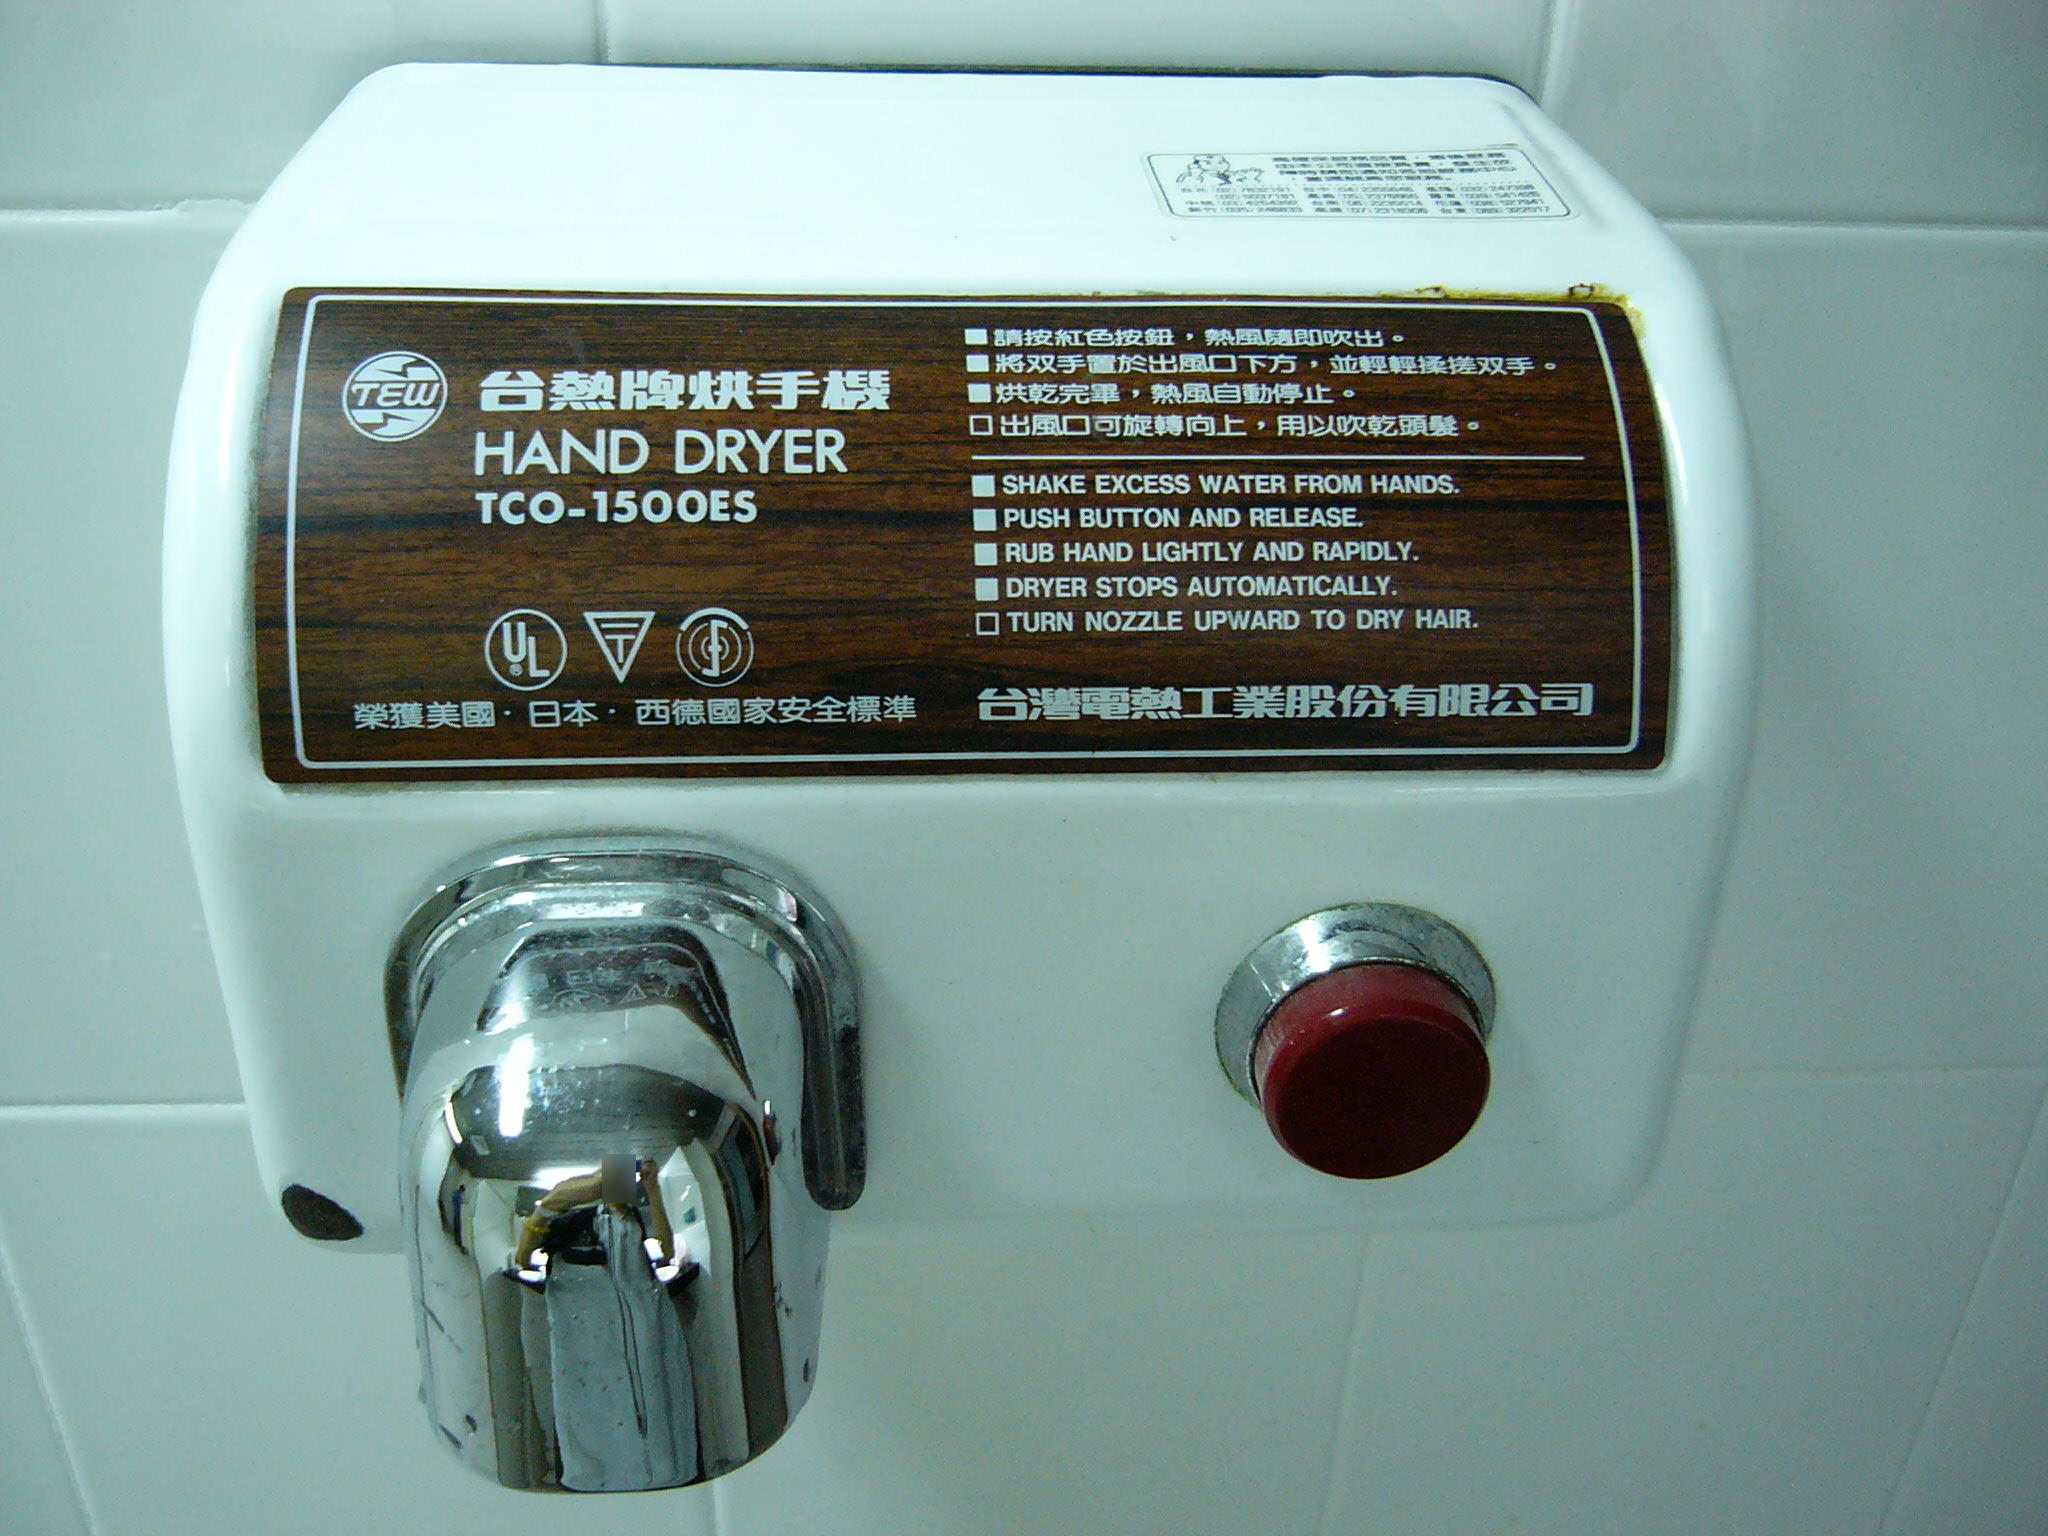 Händetrockner World Dryer File Tew Hand Dryer Tco 1500es Jpg Wikimedia Commons